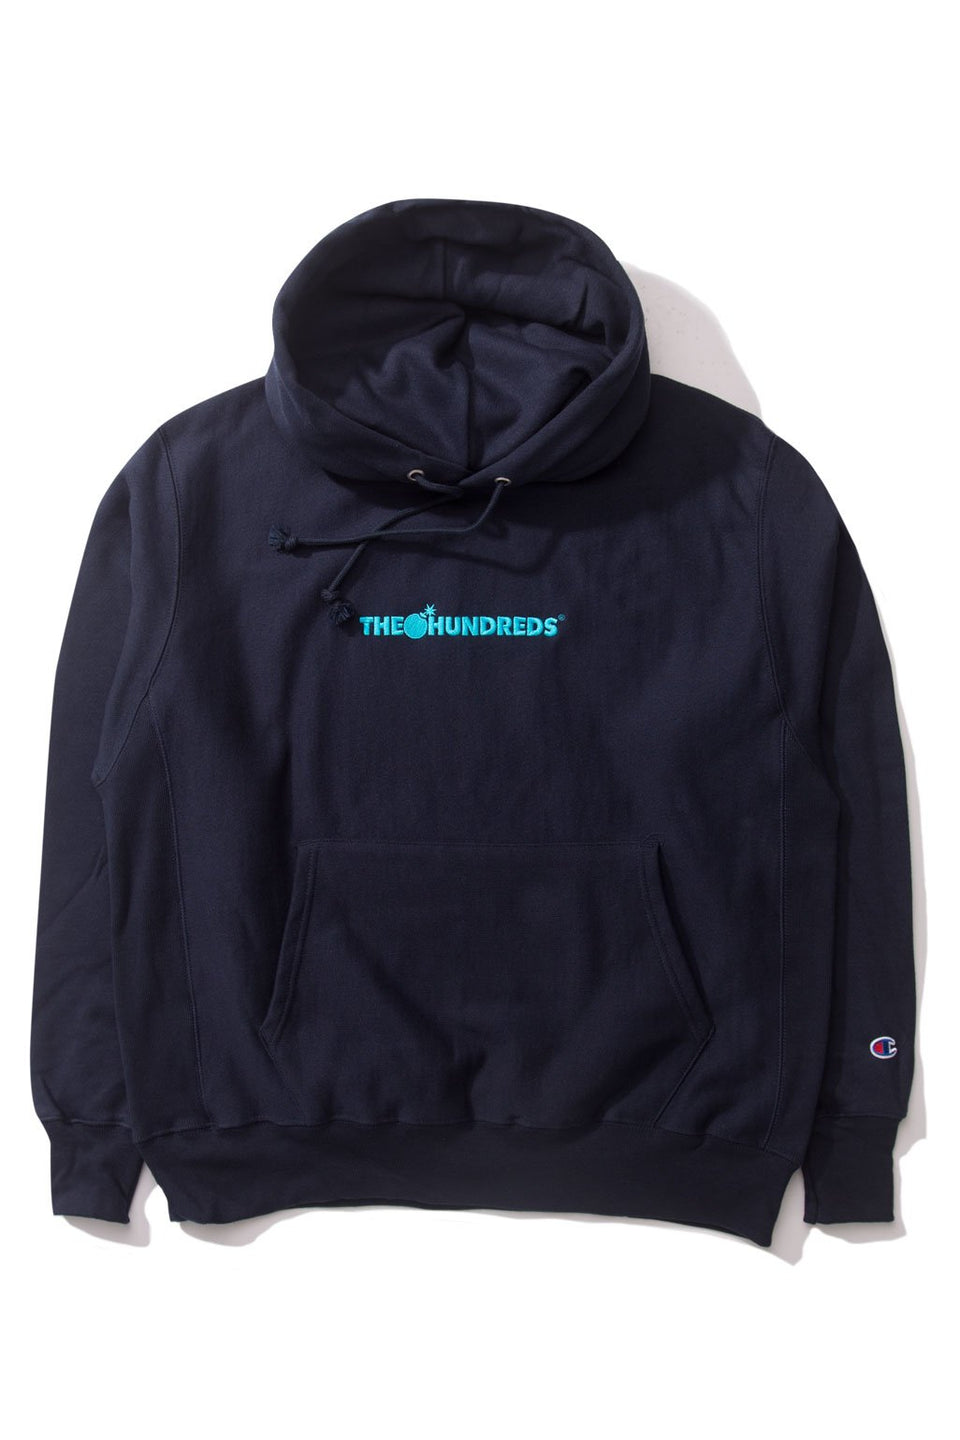 aebf630d95a8 Small Bar Champion RW Pullover Hoodie – The Hundreds